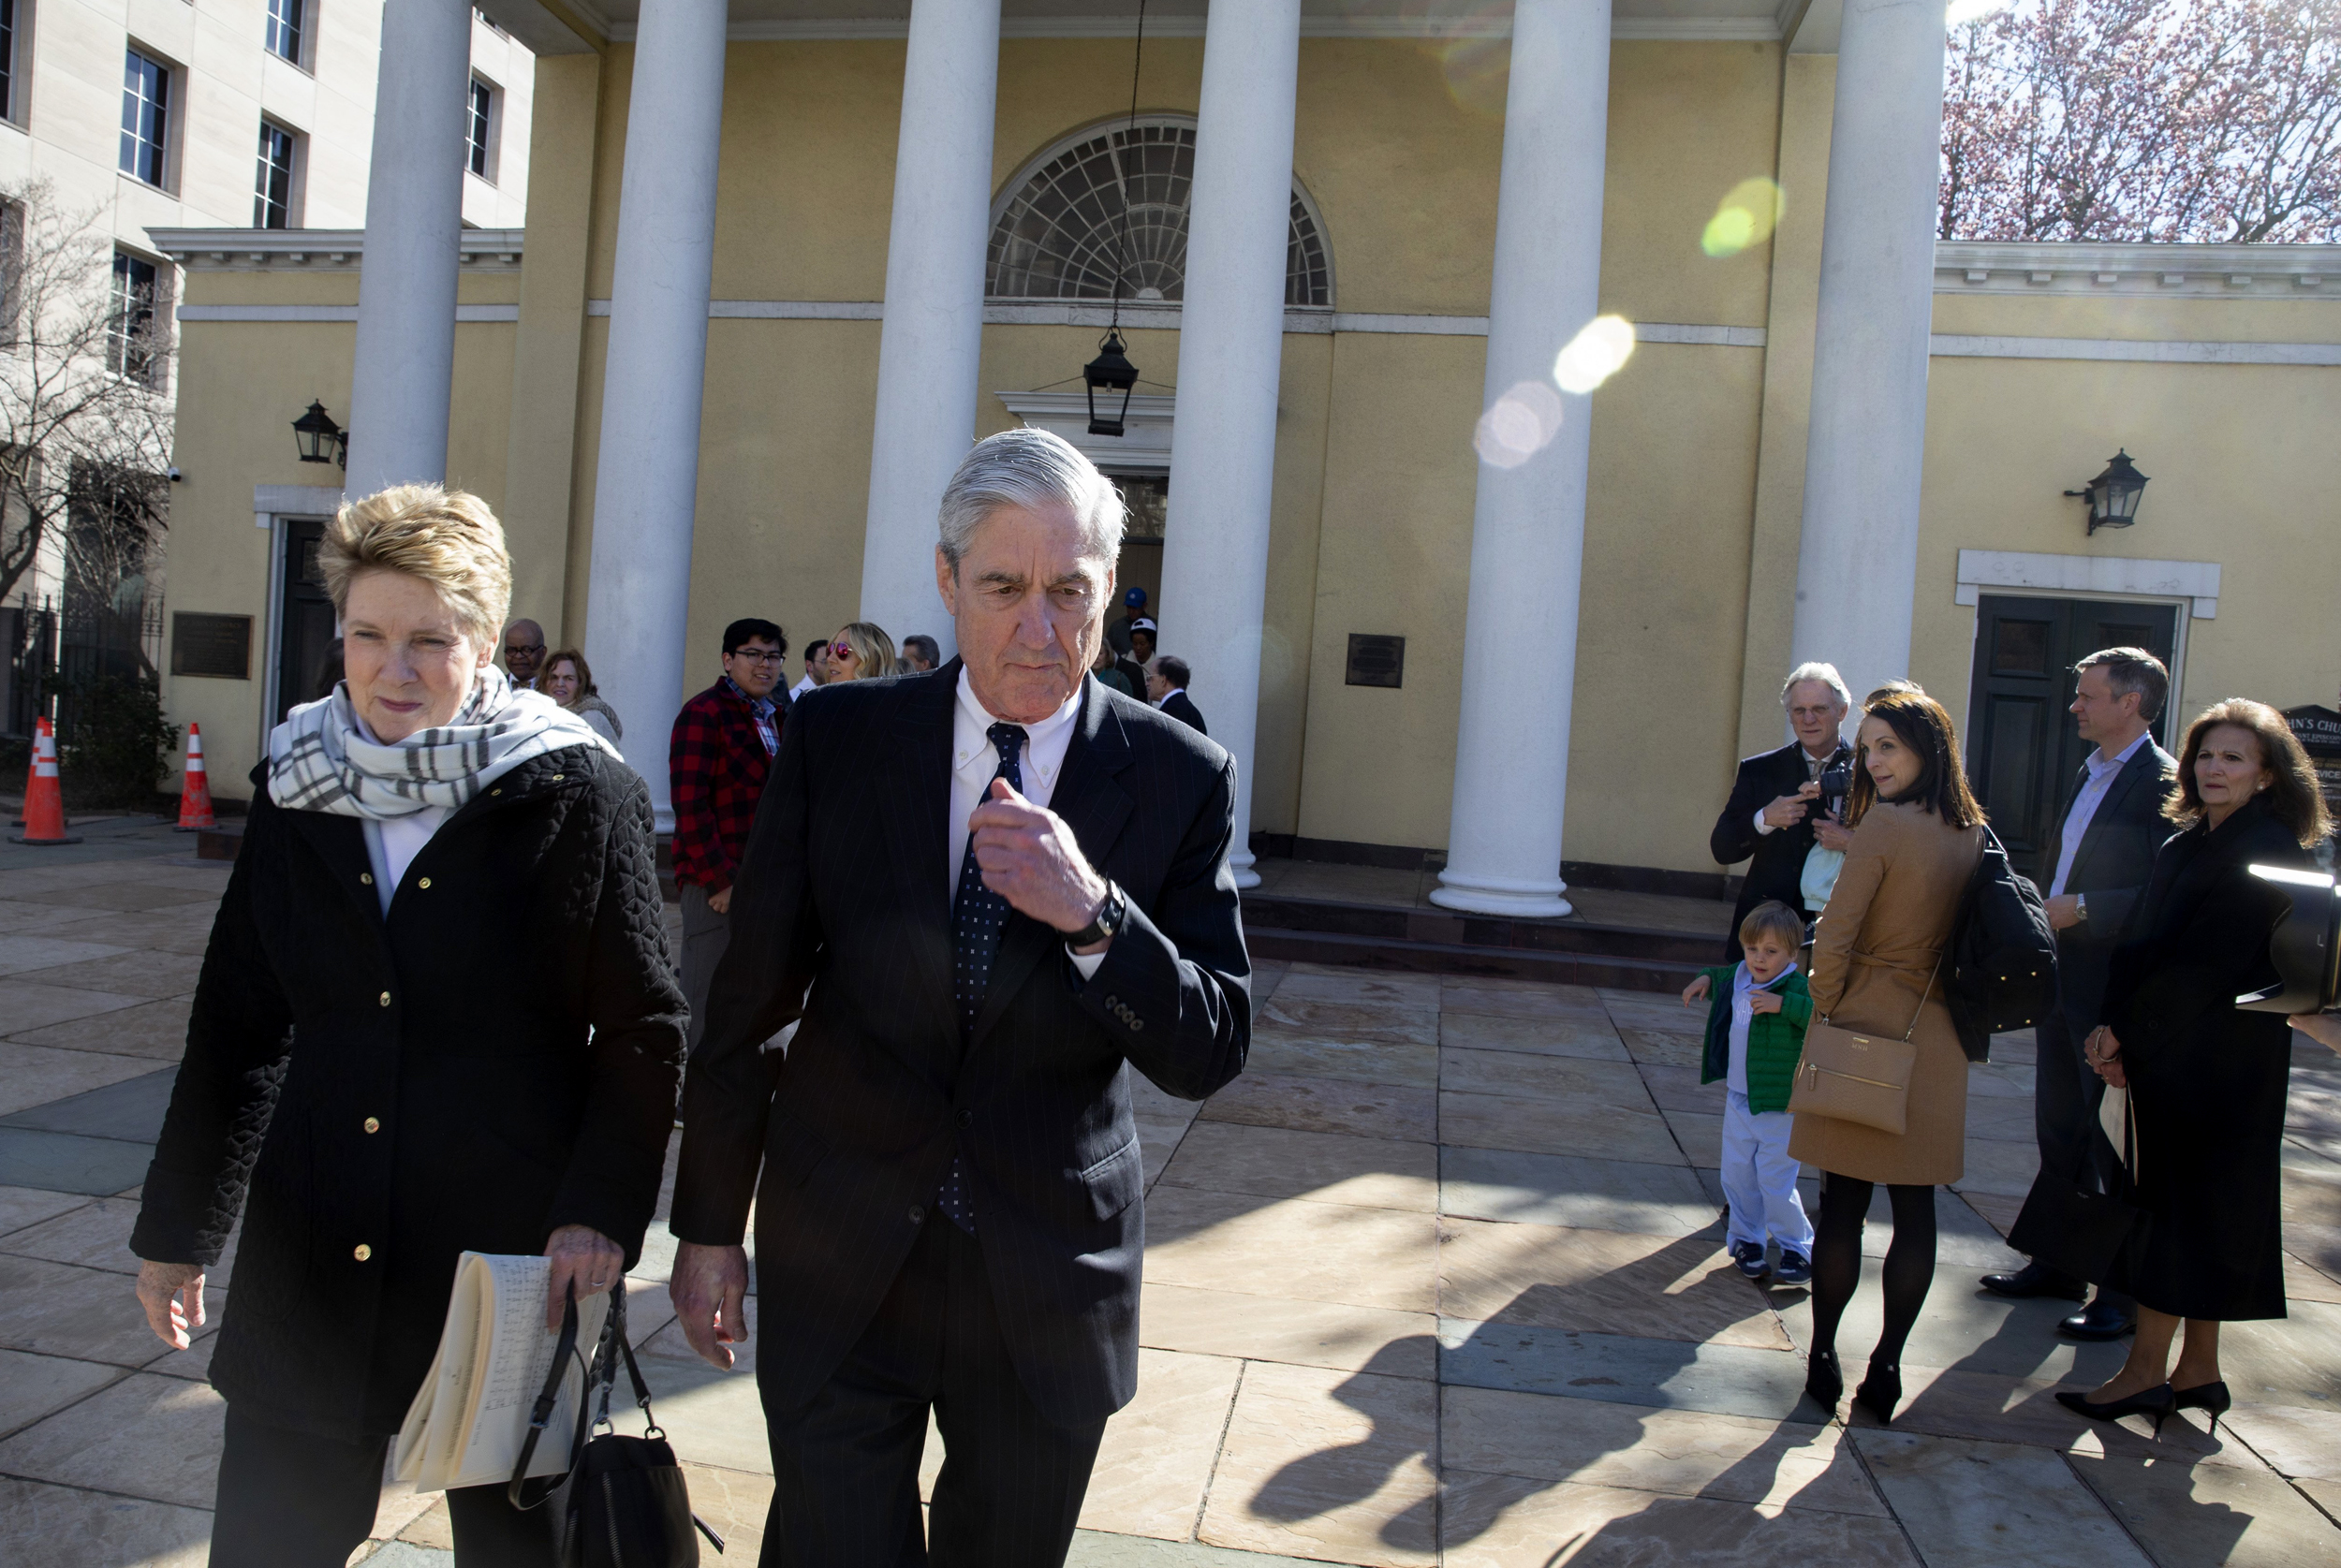 nbcnews.com - Many questions surround Mueller's handling of the obstruction of justice issue